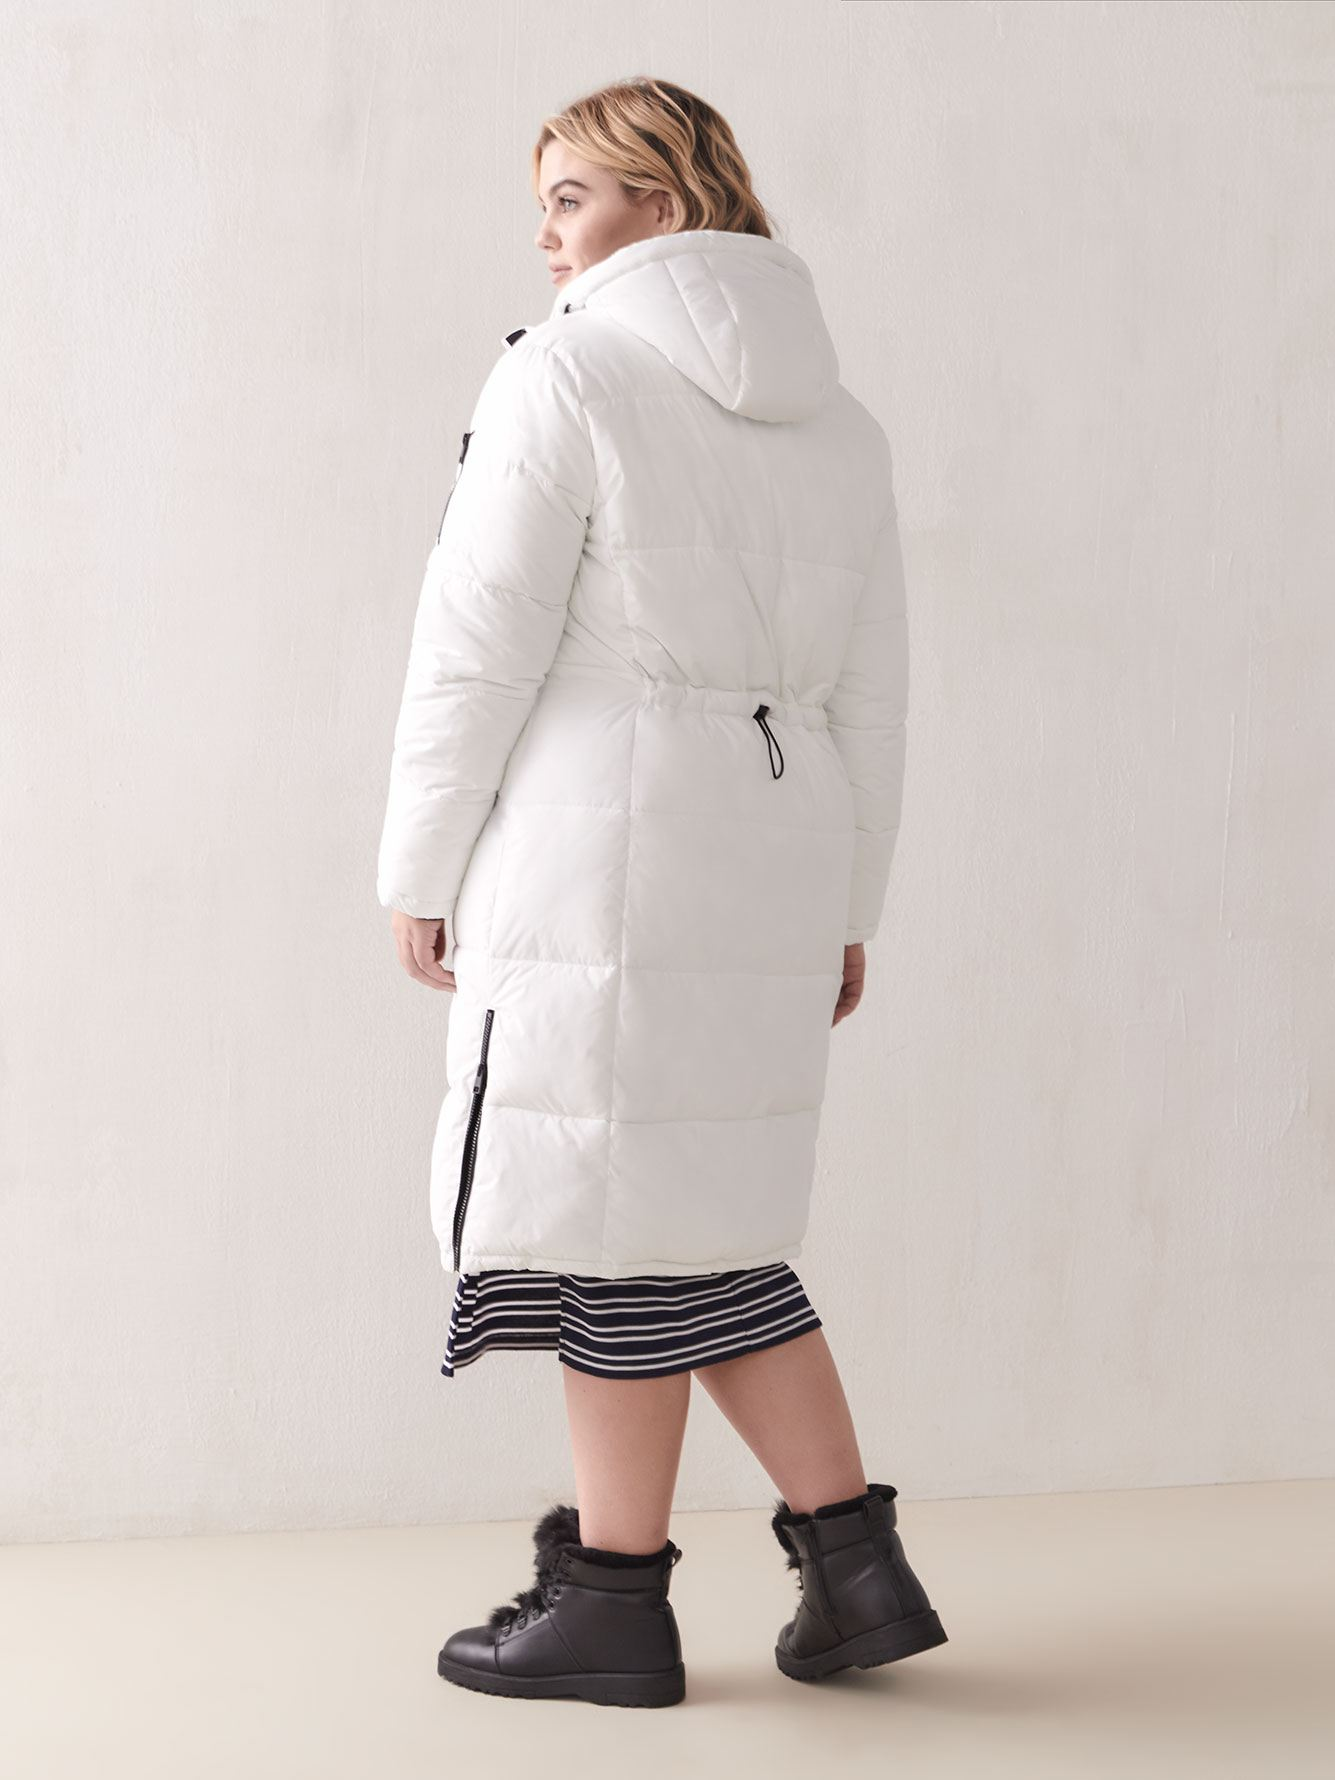 Atlantic White Long Puffer Coat - Addition Elle